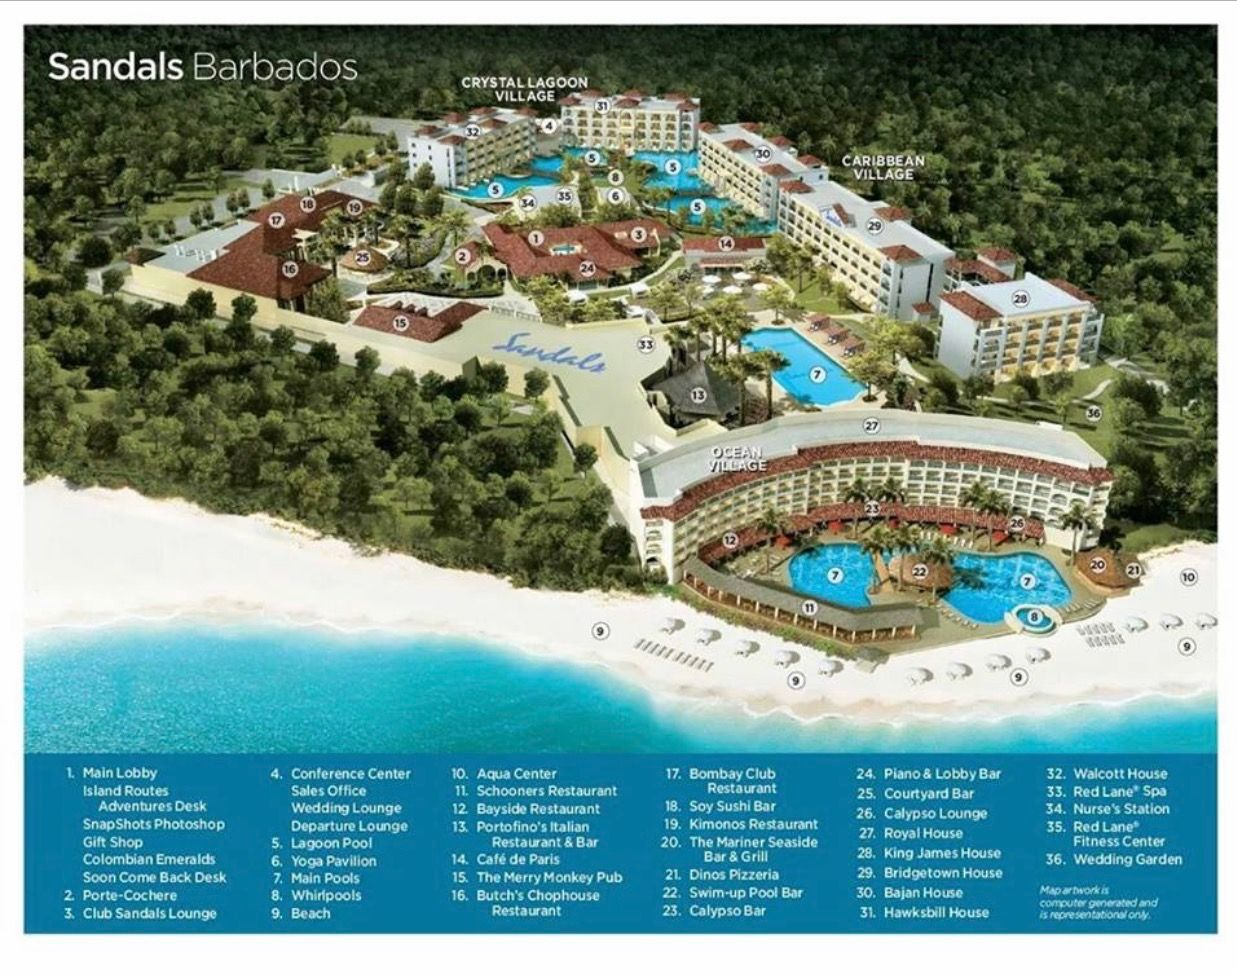 Sandals Barbados Resort Map